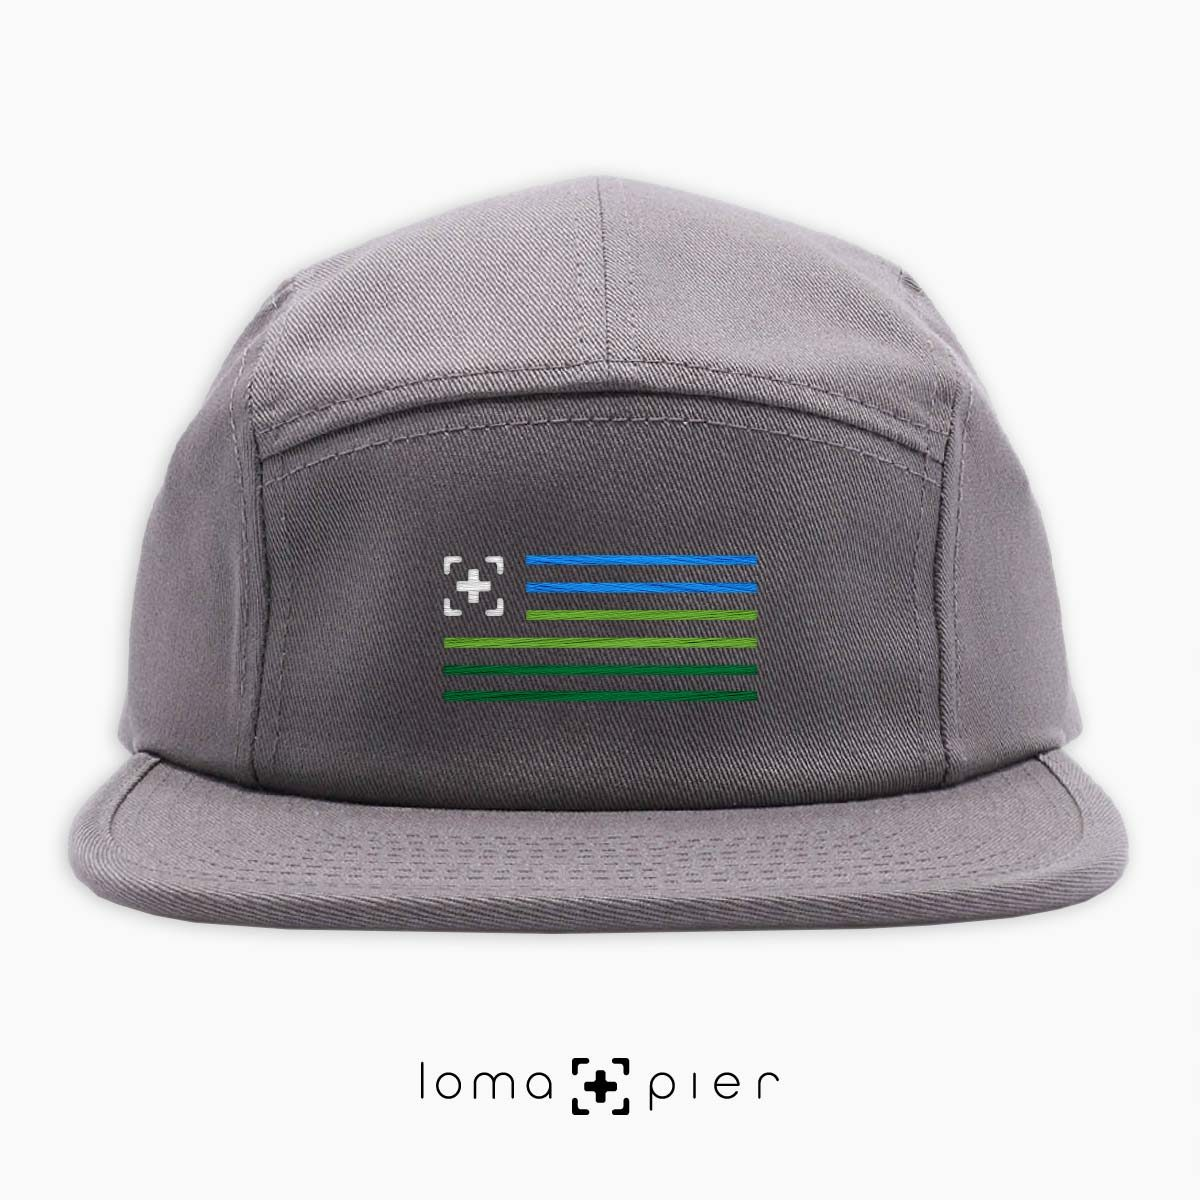 loma+stripes icon embroidered on a grey cotton 5-panel hat by loma+pier hat store